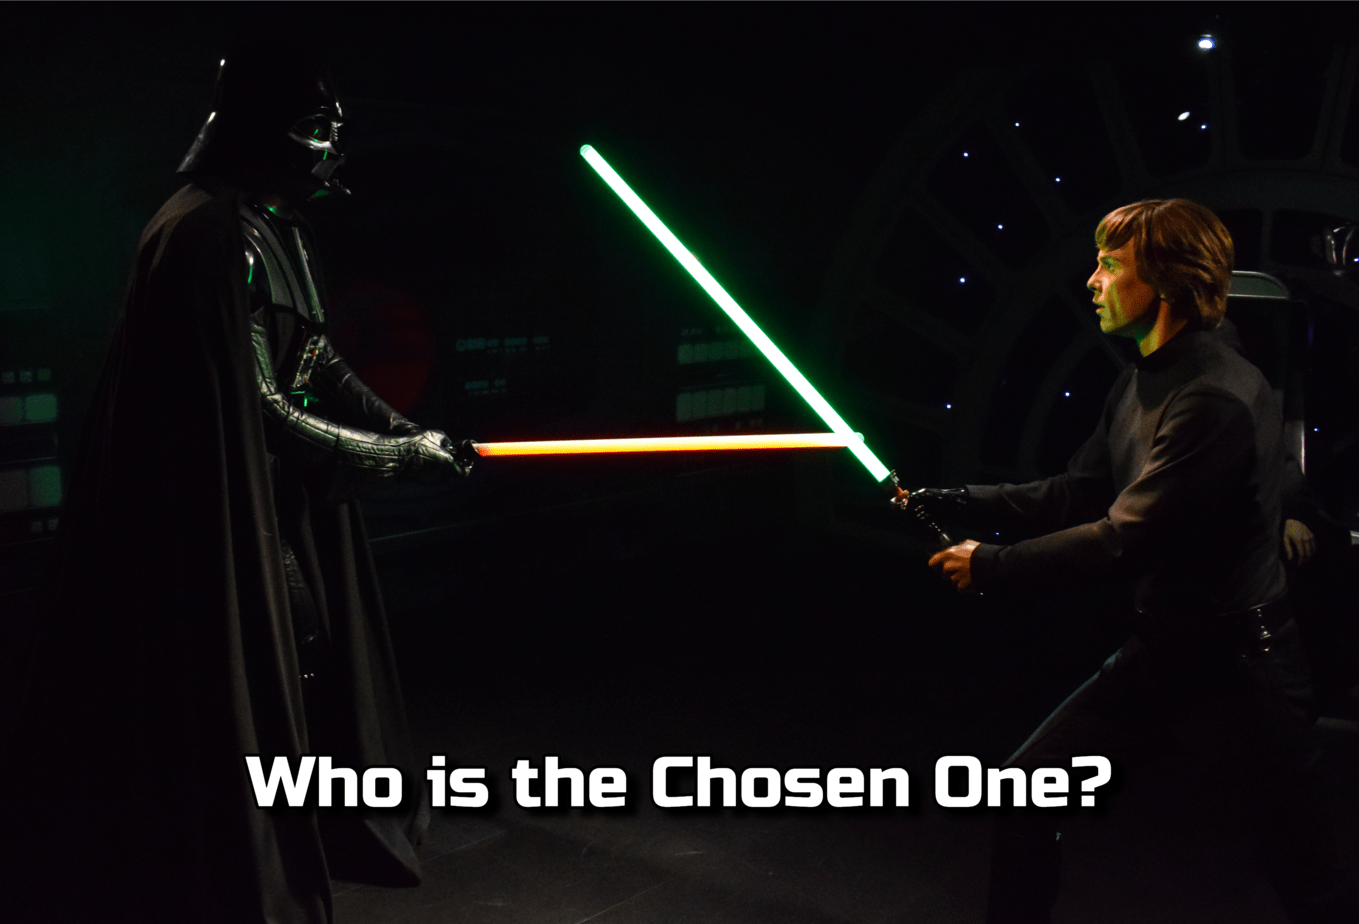 Who is the chosen one? Anakin or Luke?